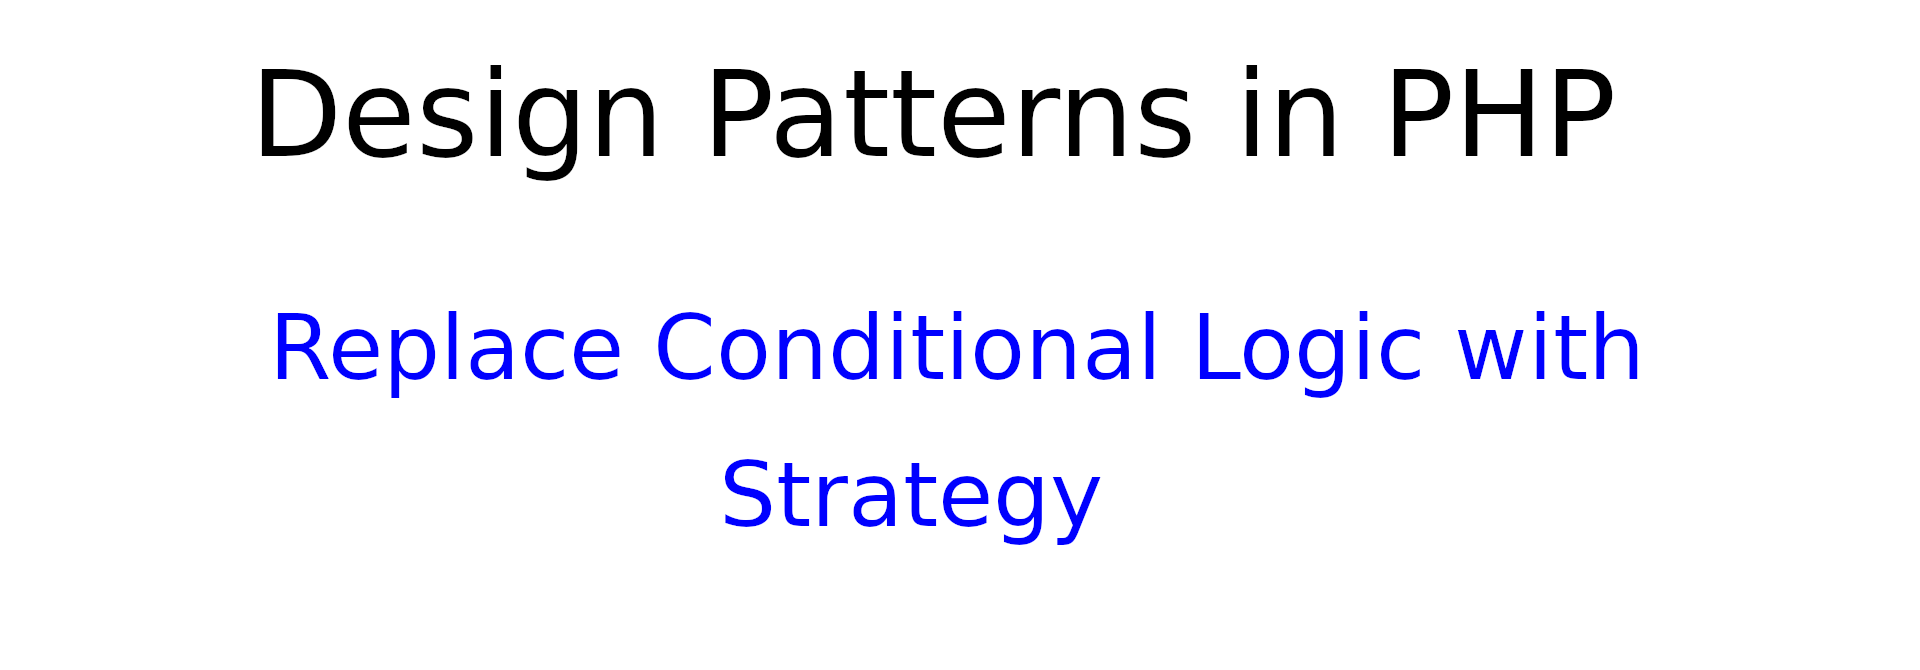 Design patterns in PHP: Strategy